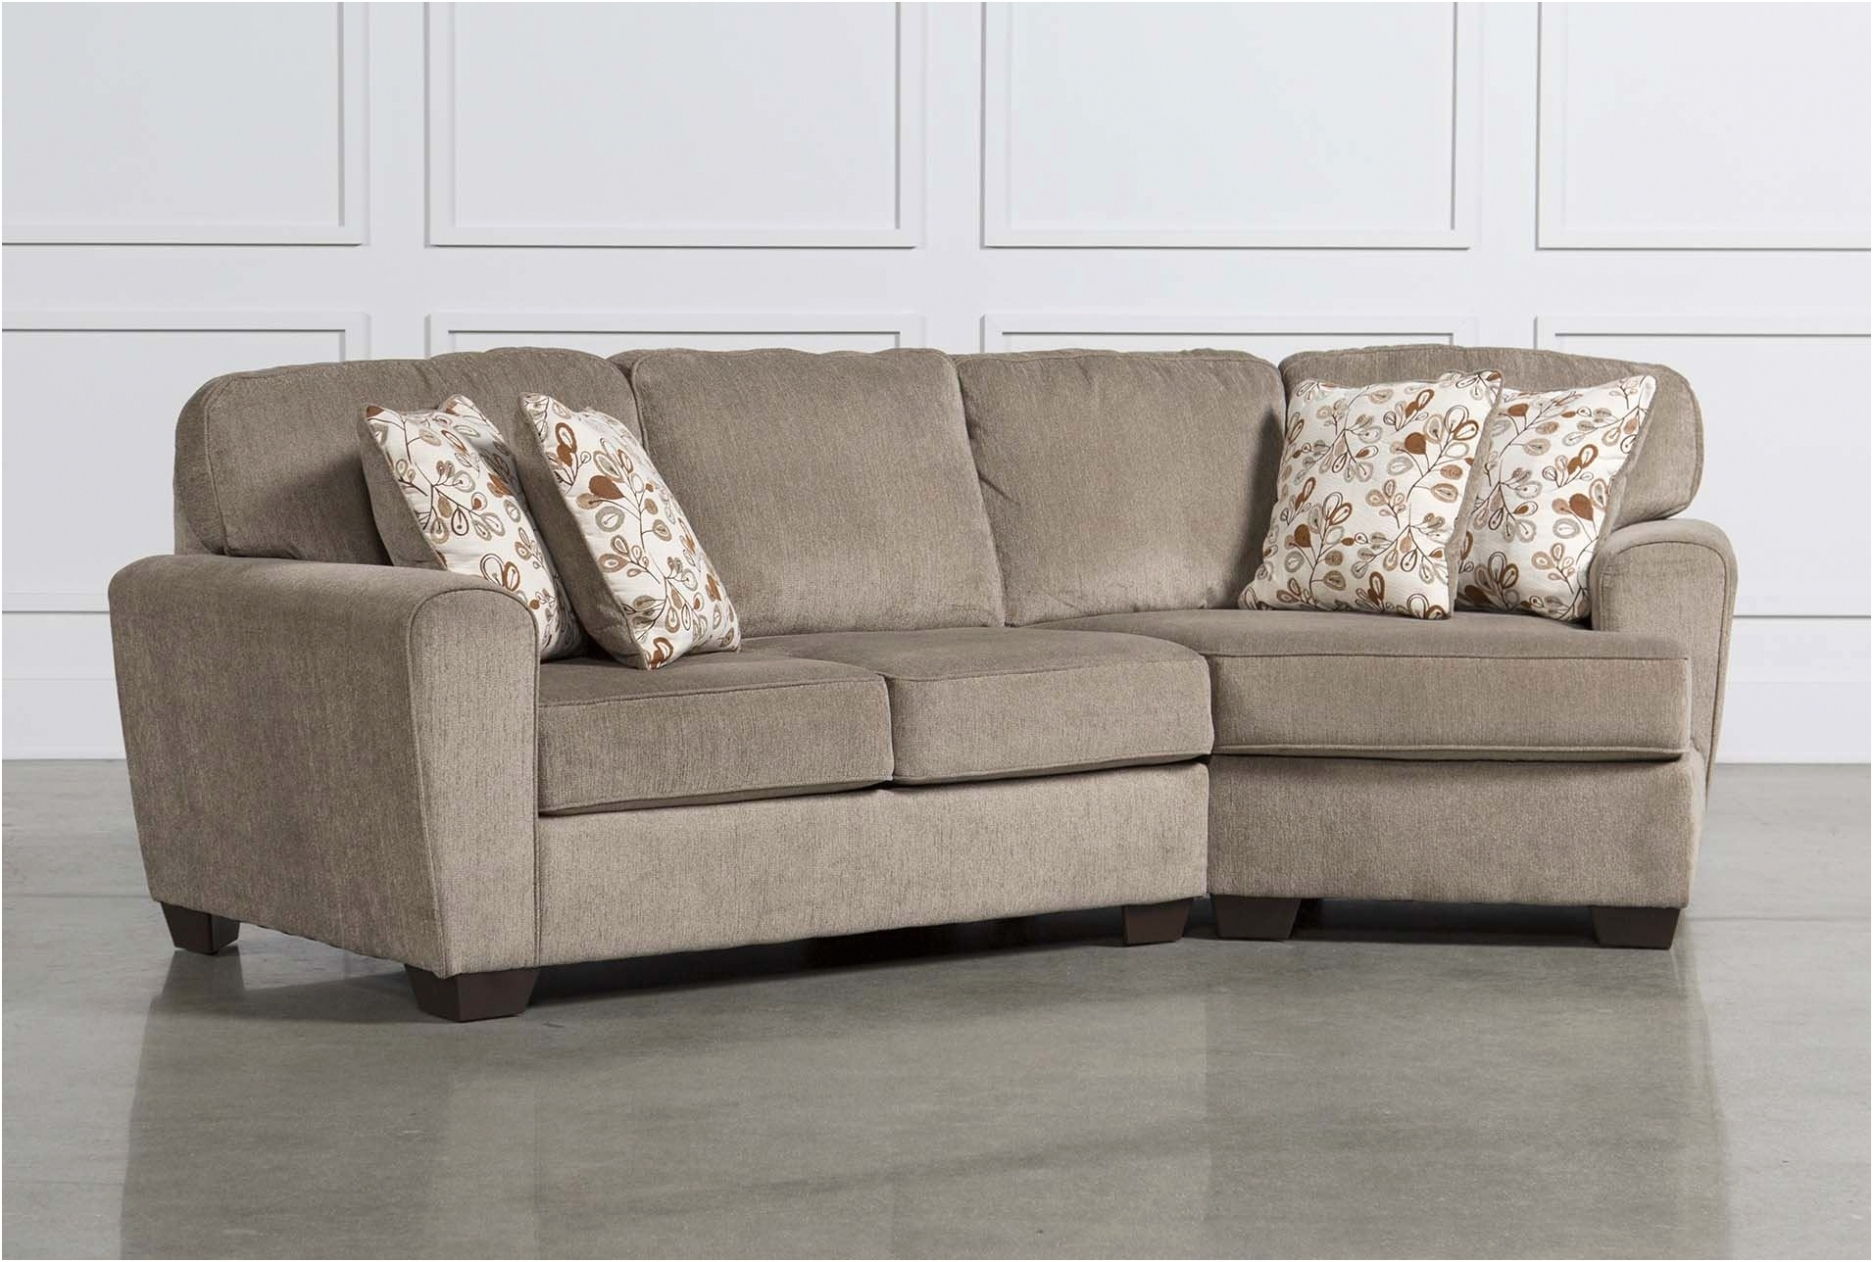 Furniture: Fresh Sectional Sofa With Cuddler Chaise New – Sofa Regarding Popular Sectional Sofas With Cuddler Chaise (View 8 of 20)